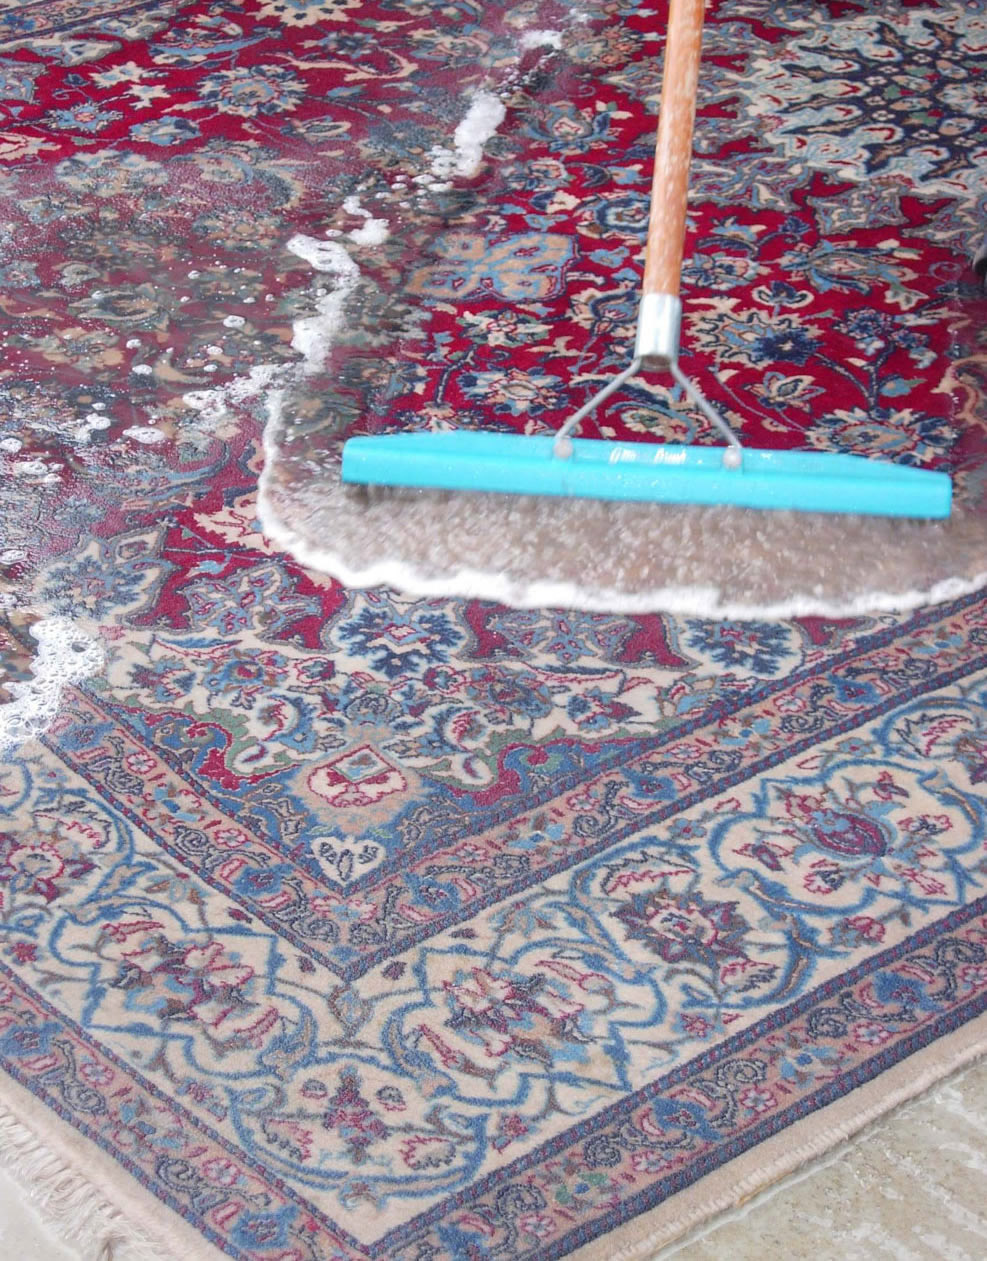 Carpet Cleaning Services In Northern Virginia